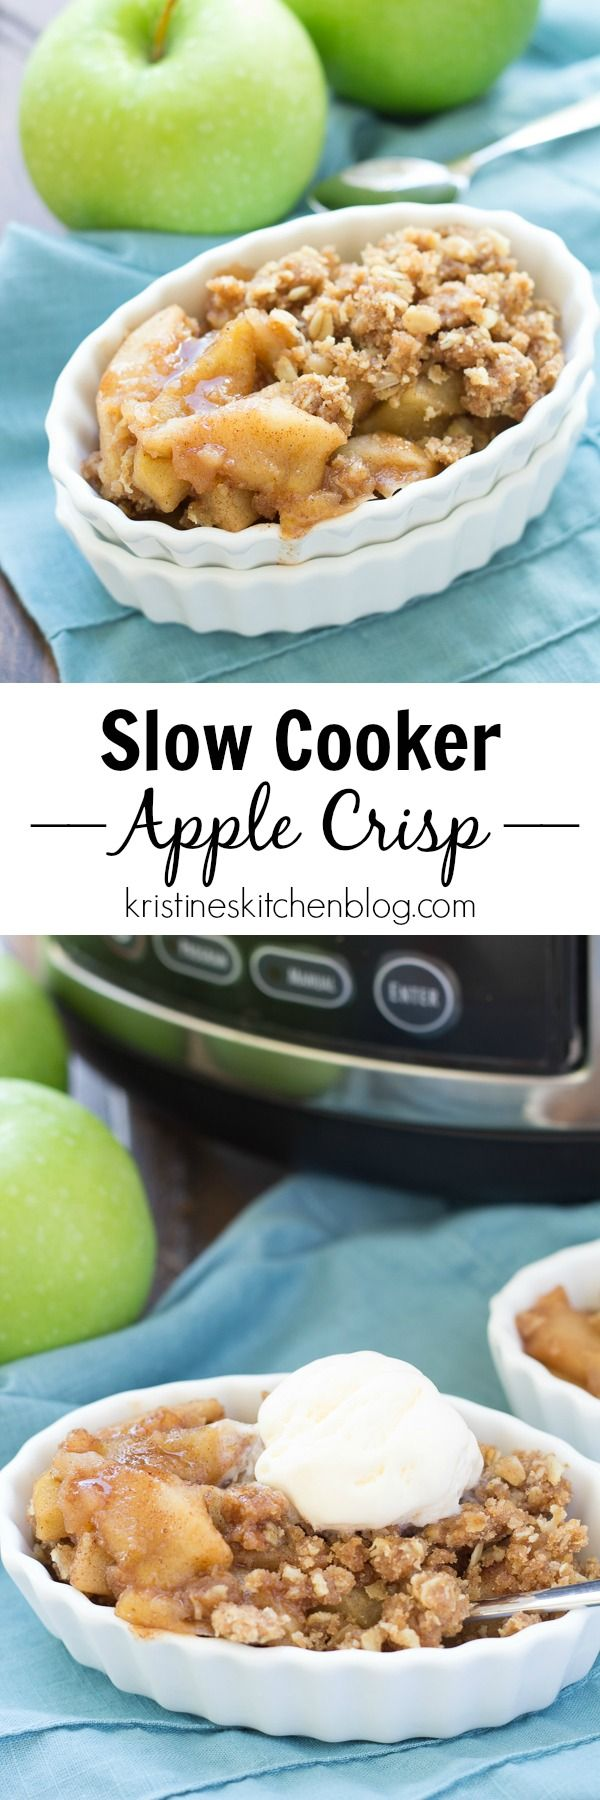 Easy Slow Cooker Apple Crisp, made completely in the crock pot! Juicy, spiced…